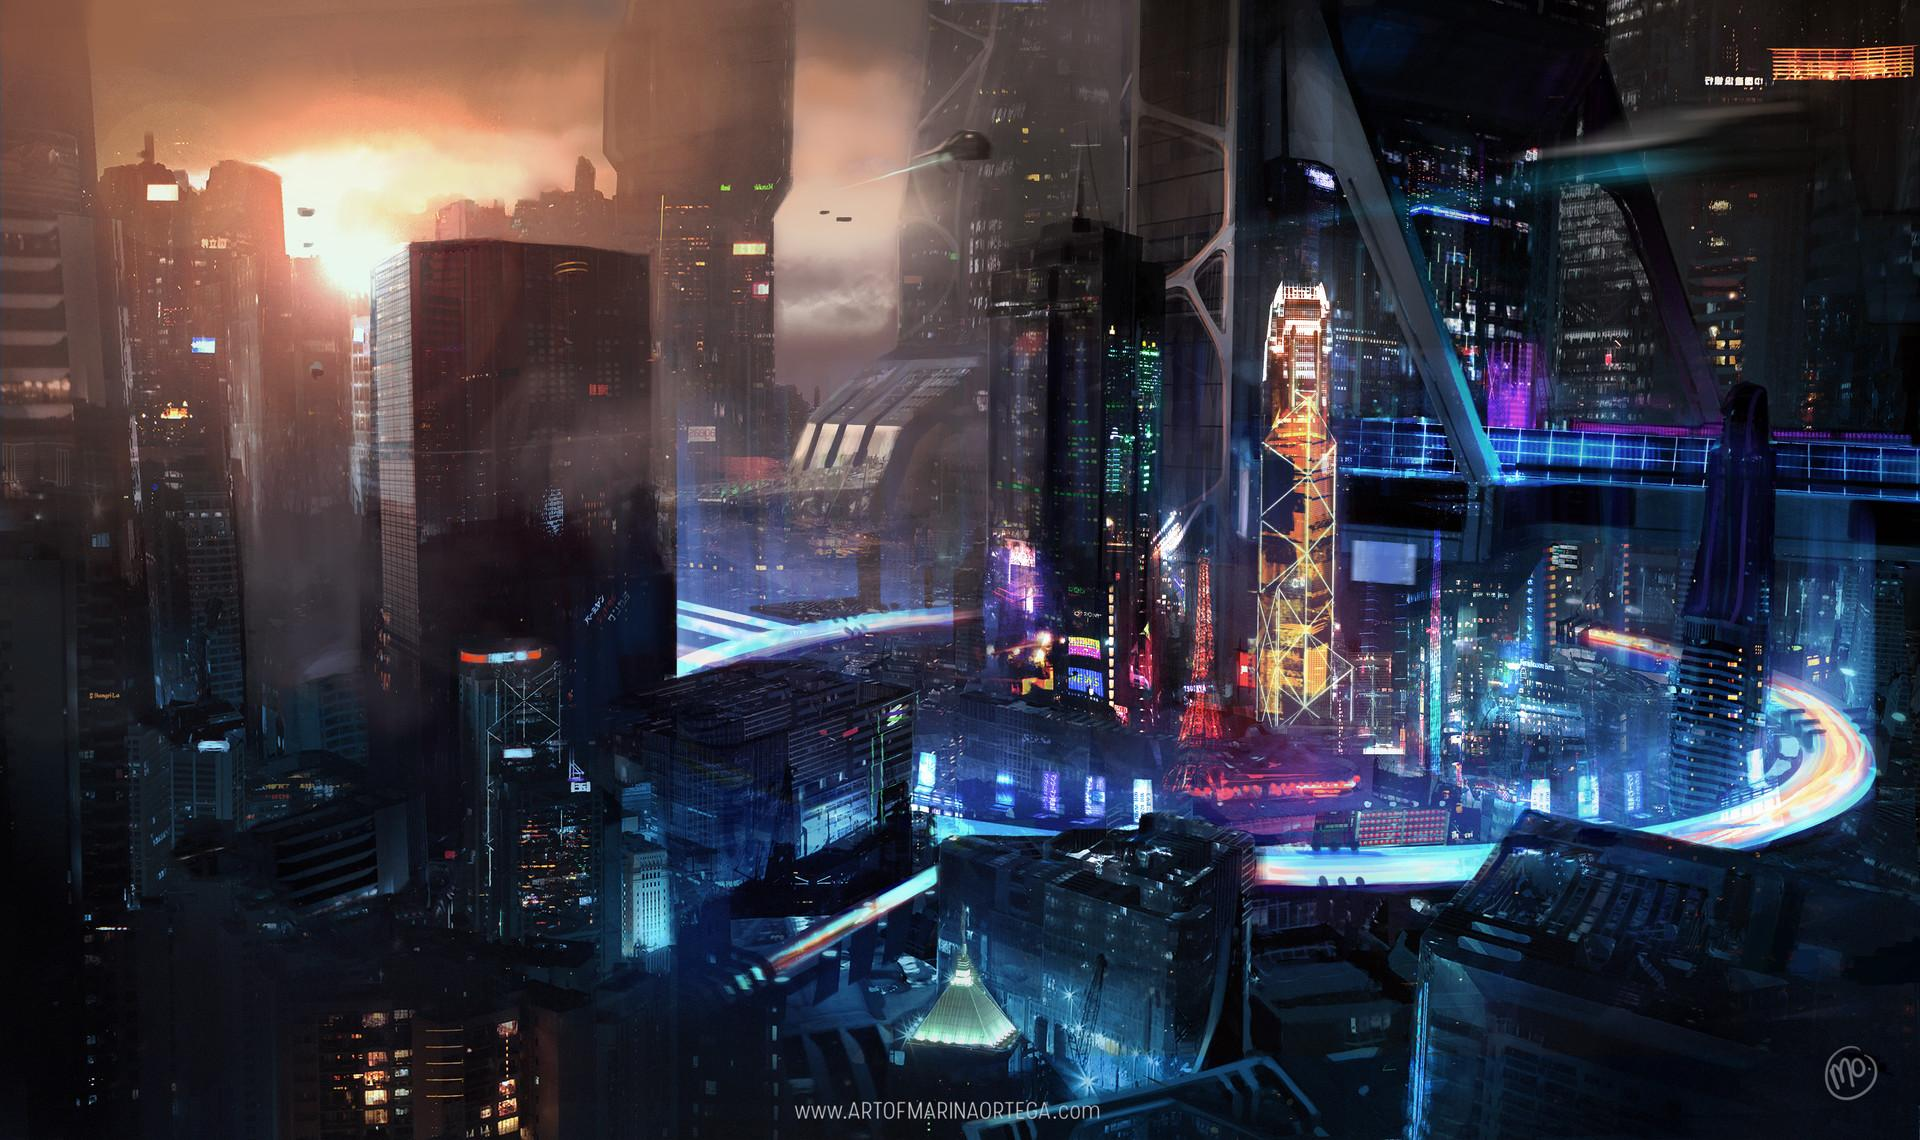 Desktop Cyberpunk Wallpapers Wallpaper Cave We hope you enjoy our growing collection of hd images to use as a background or home screen for your smartphone or computer. desktop cyberpunk wallpapers